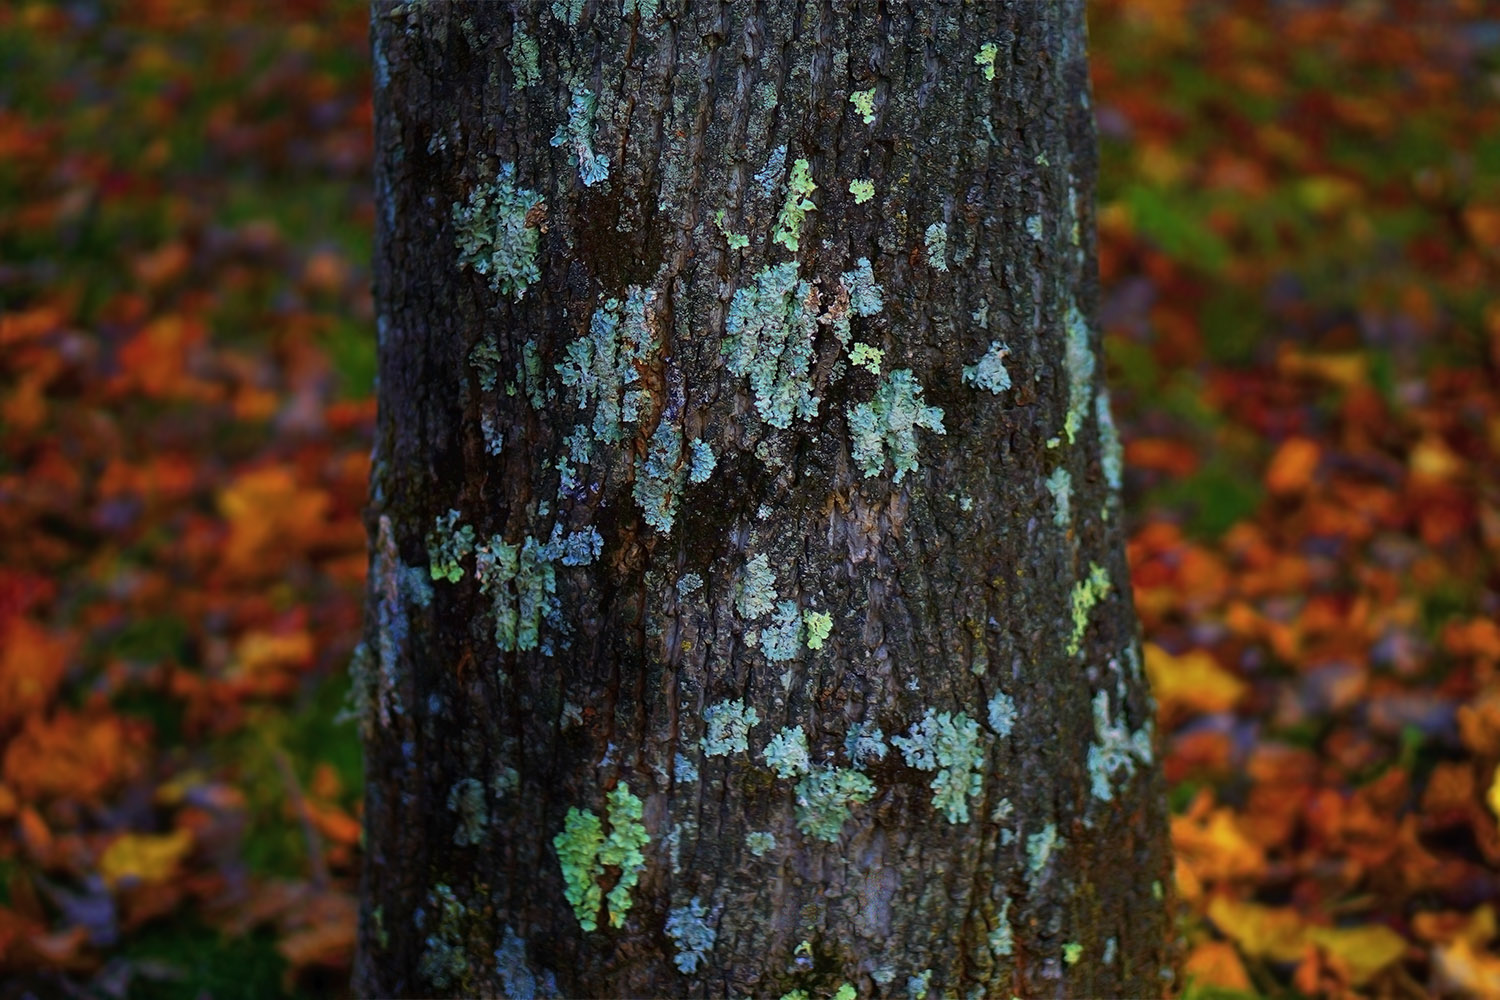 36. leaves and lichen, by k. bos